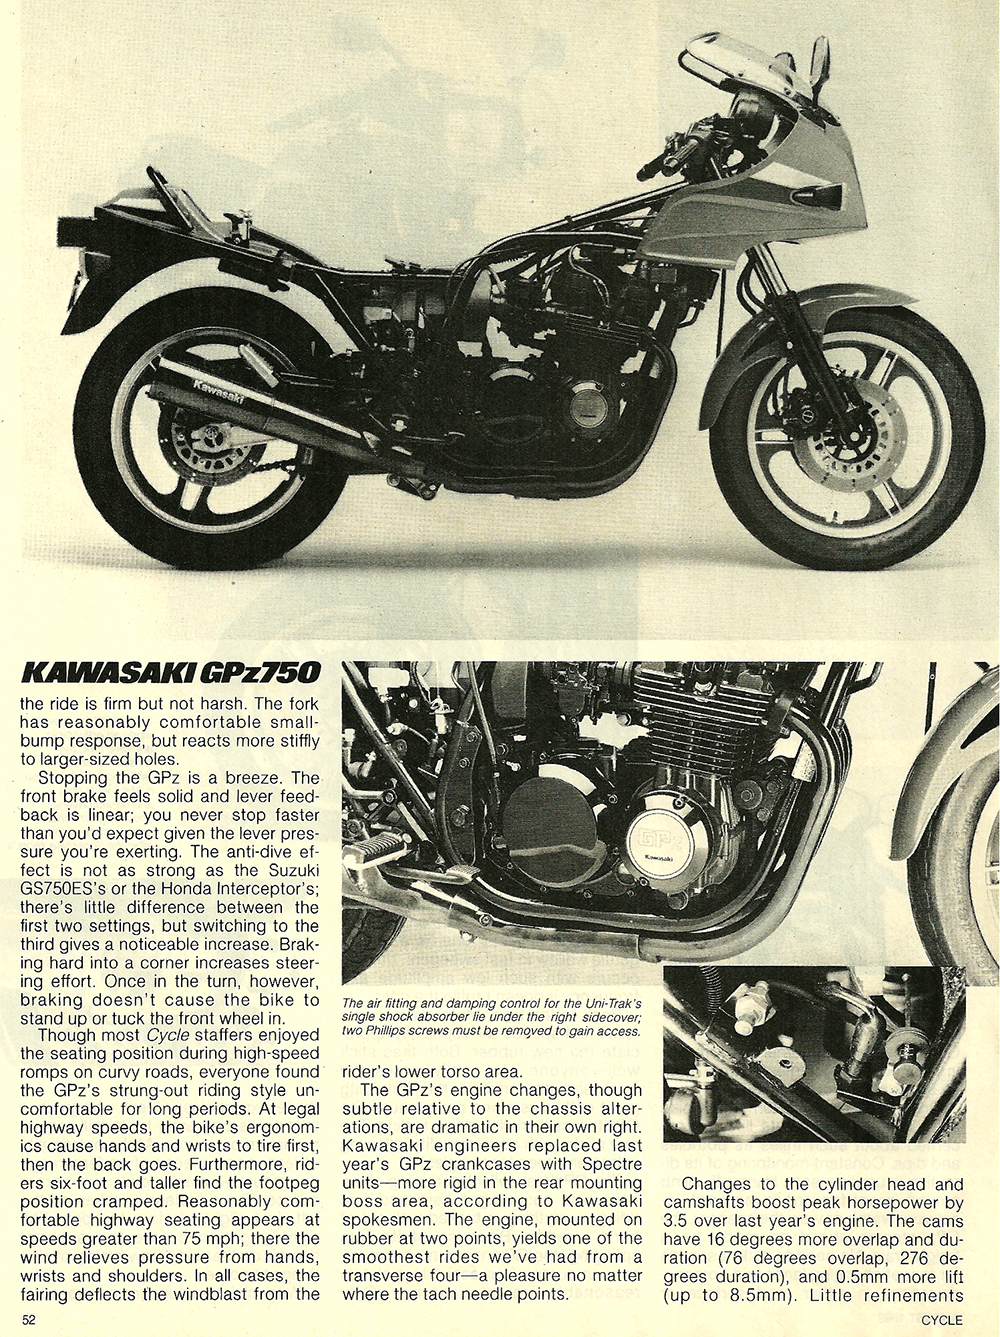 1983 Kawasaki GPz 750 road test 5.jpg